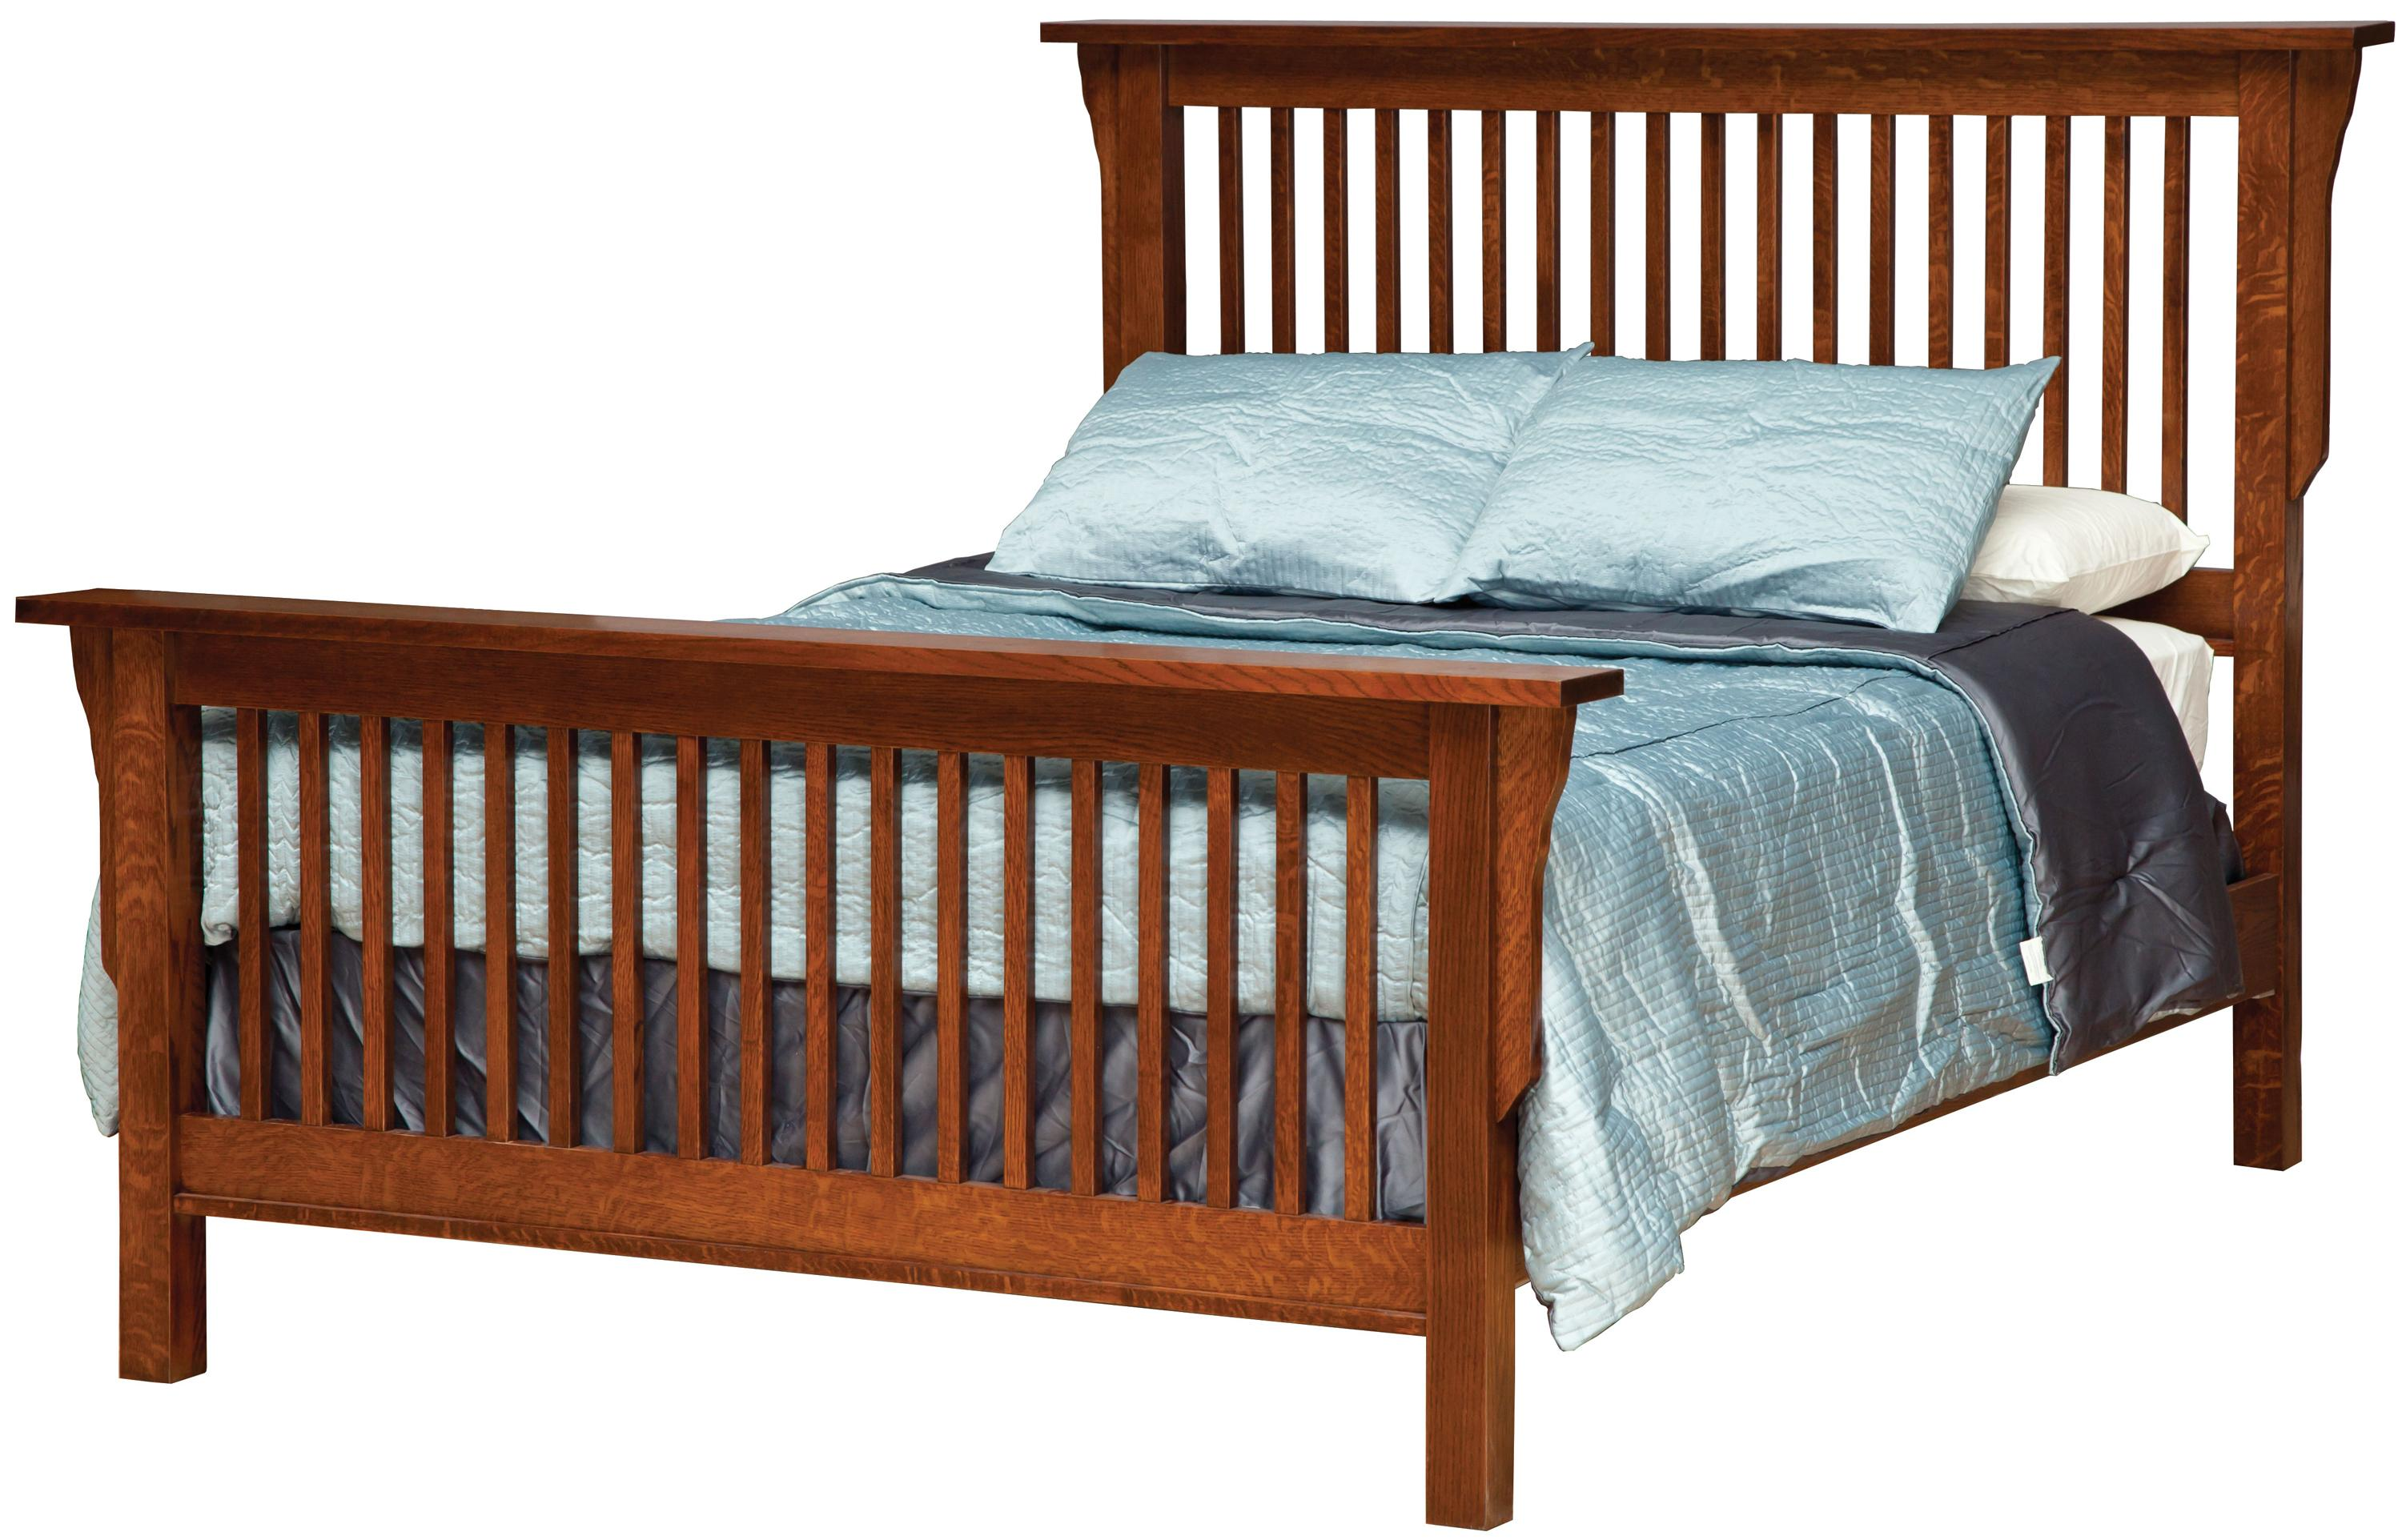 california king mission style frame bed with headboard footboard slat detail by daniel 39 s amish. Black Bedroom Furniture Sets. Home Design Ideas